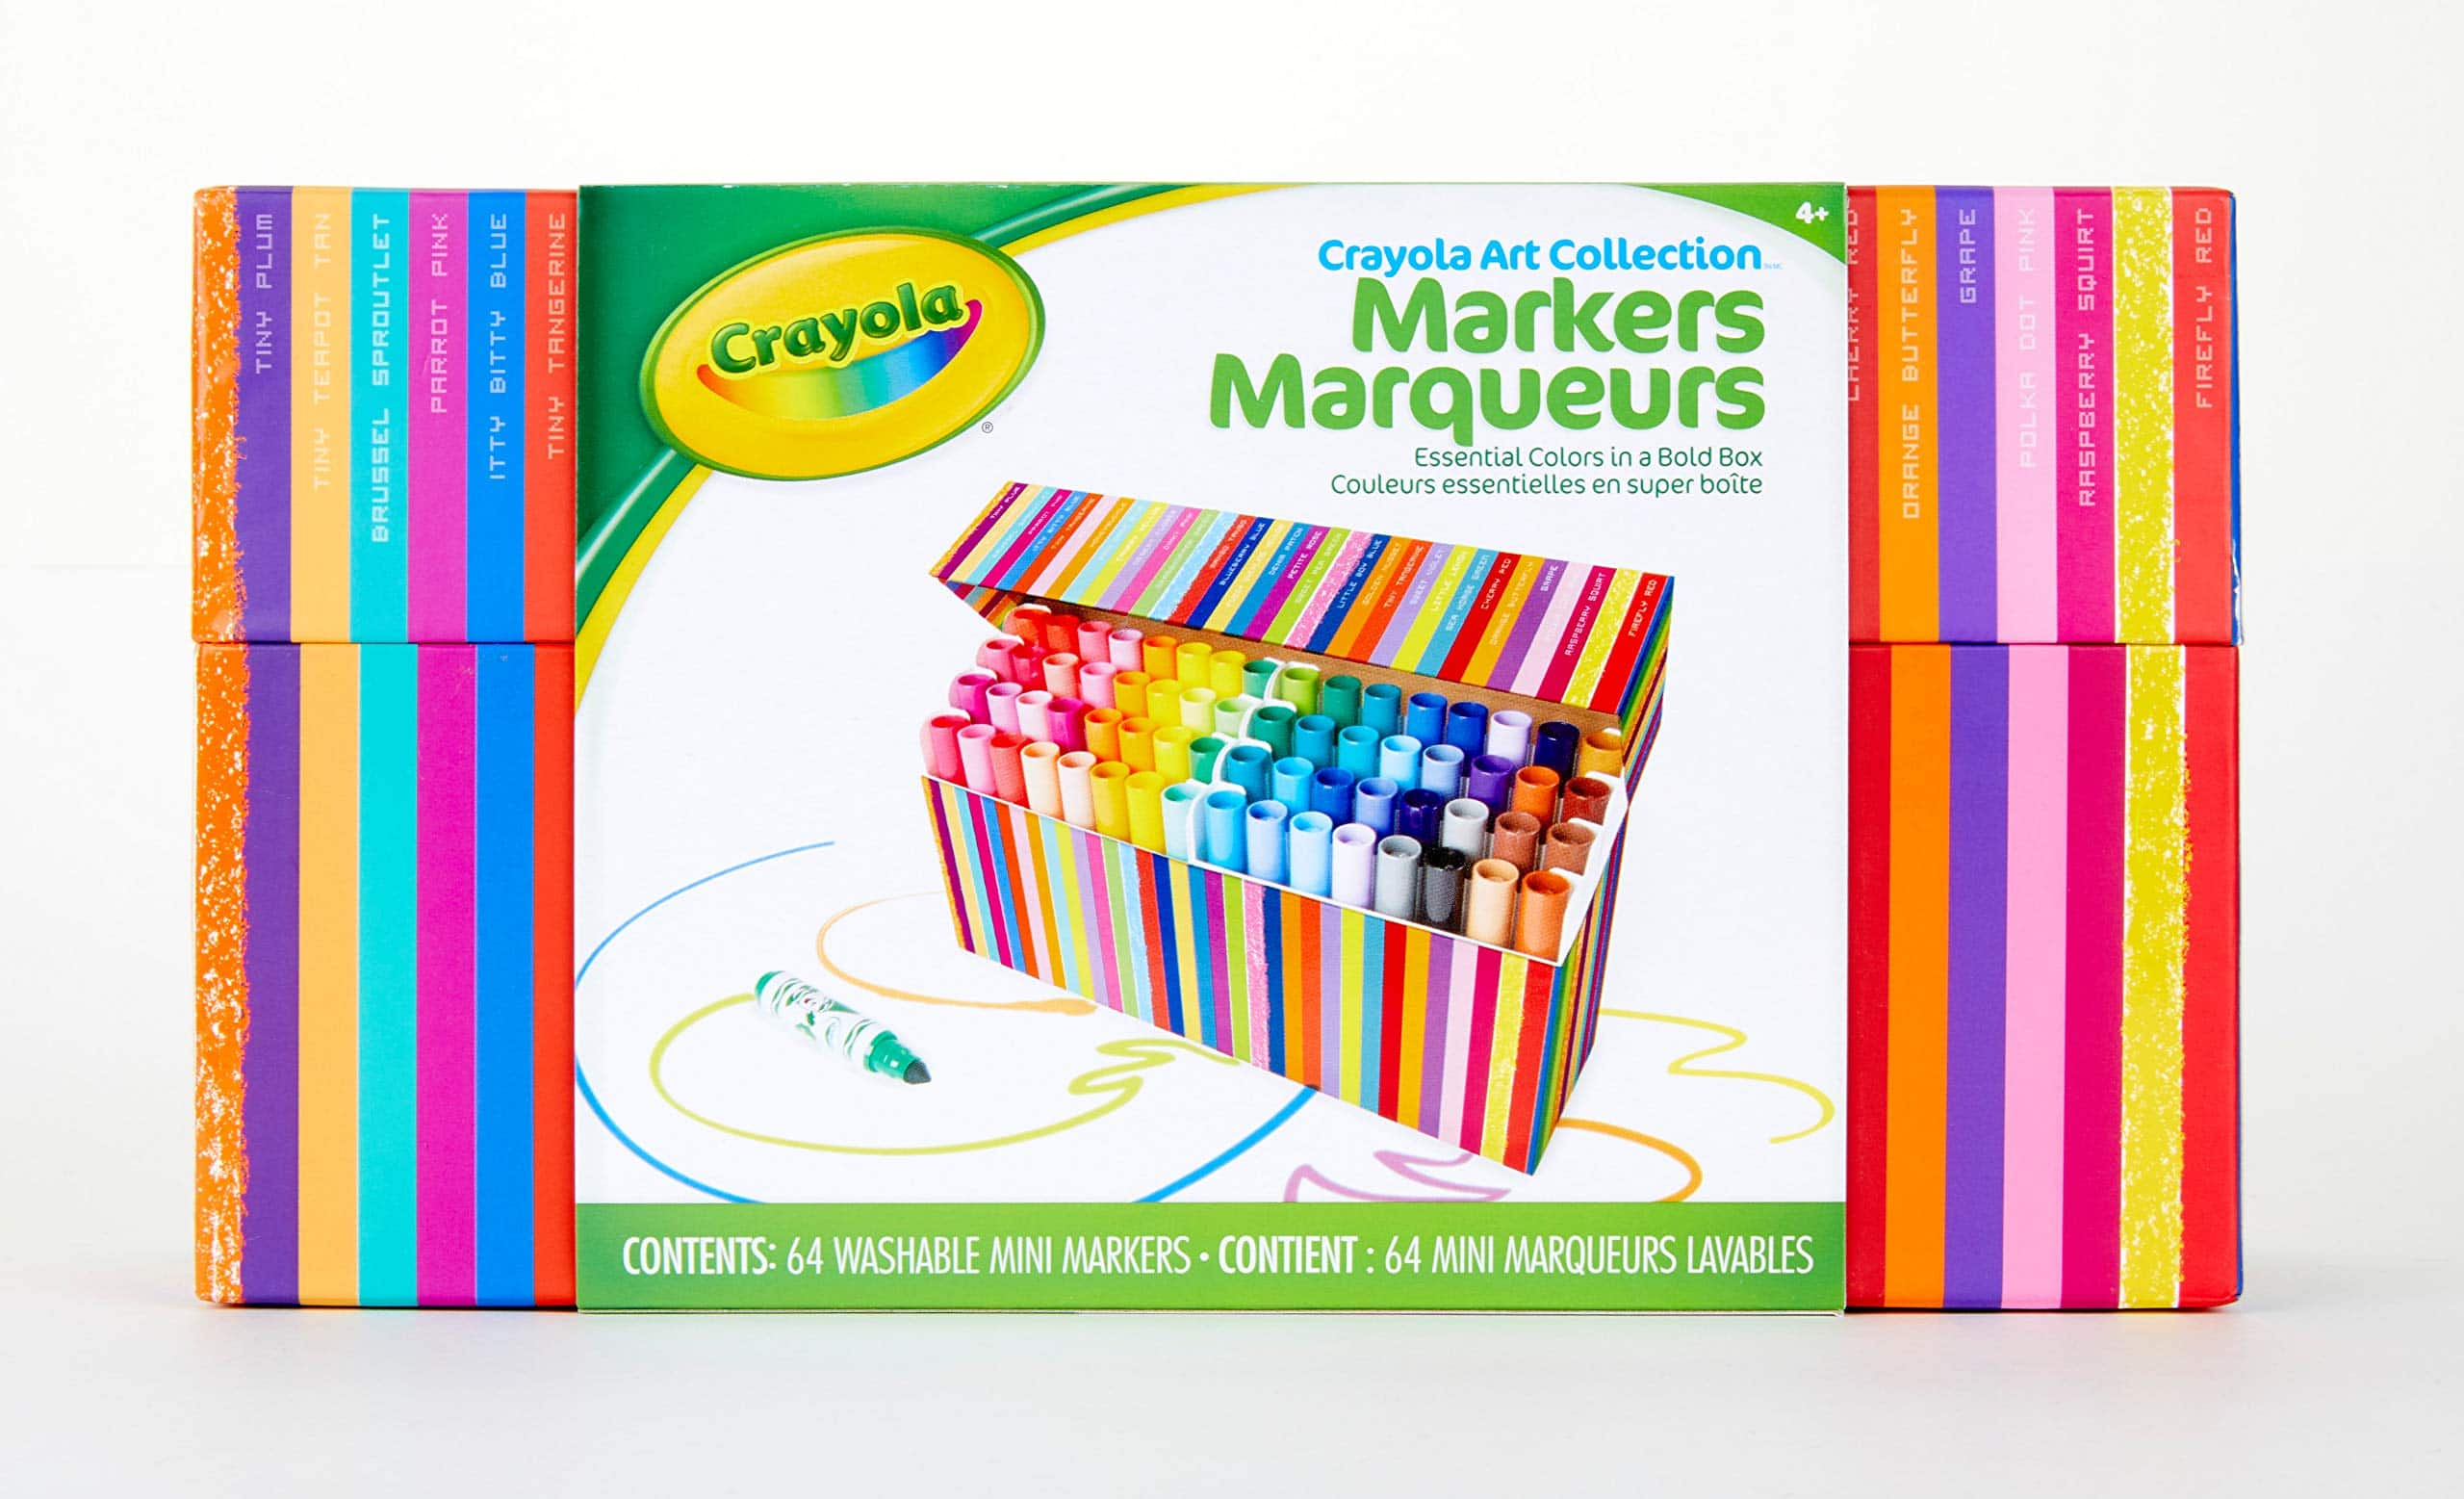 Crayola Pip Squeaks Marker Set, Washable Mini Markers, 64 Count, Gift for Kids - $10 at Amazon